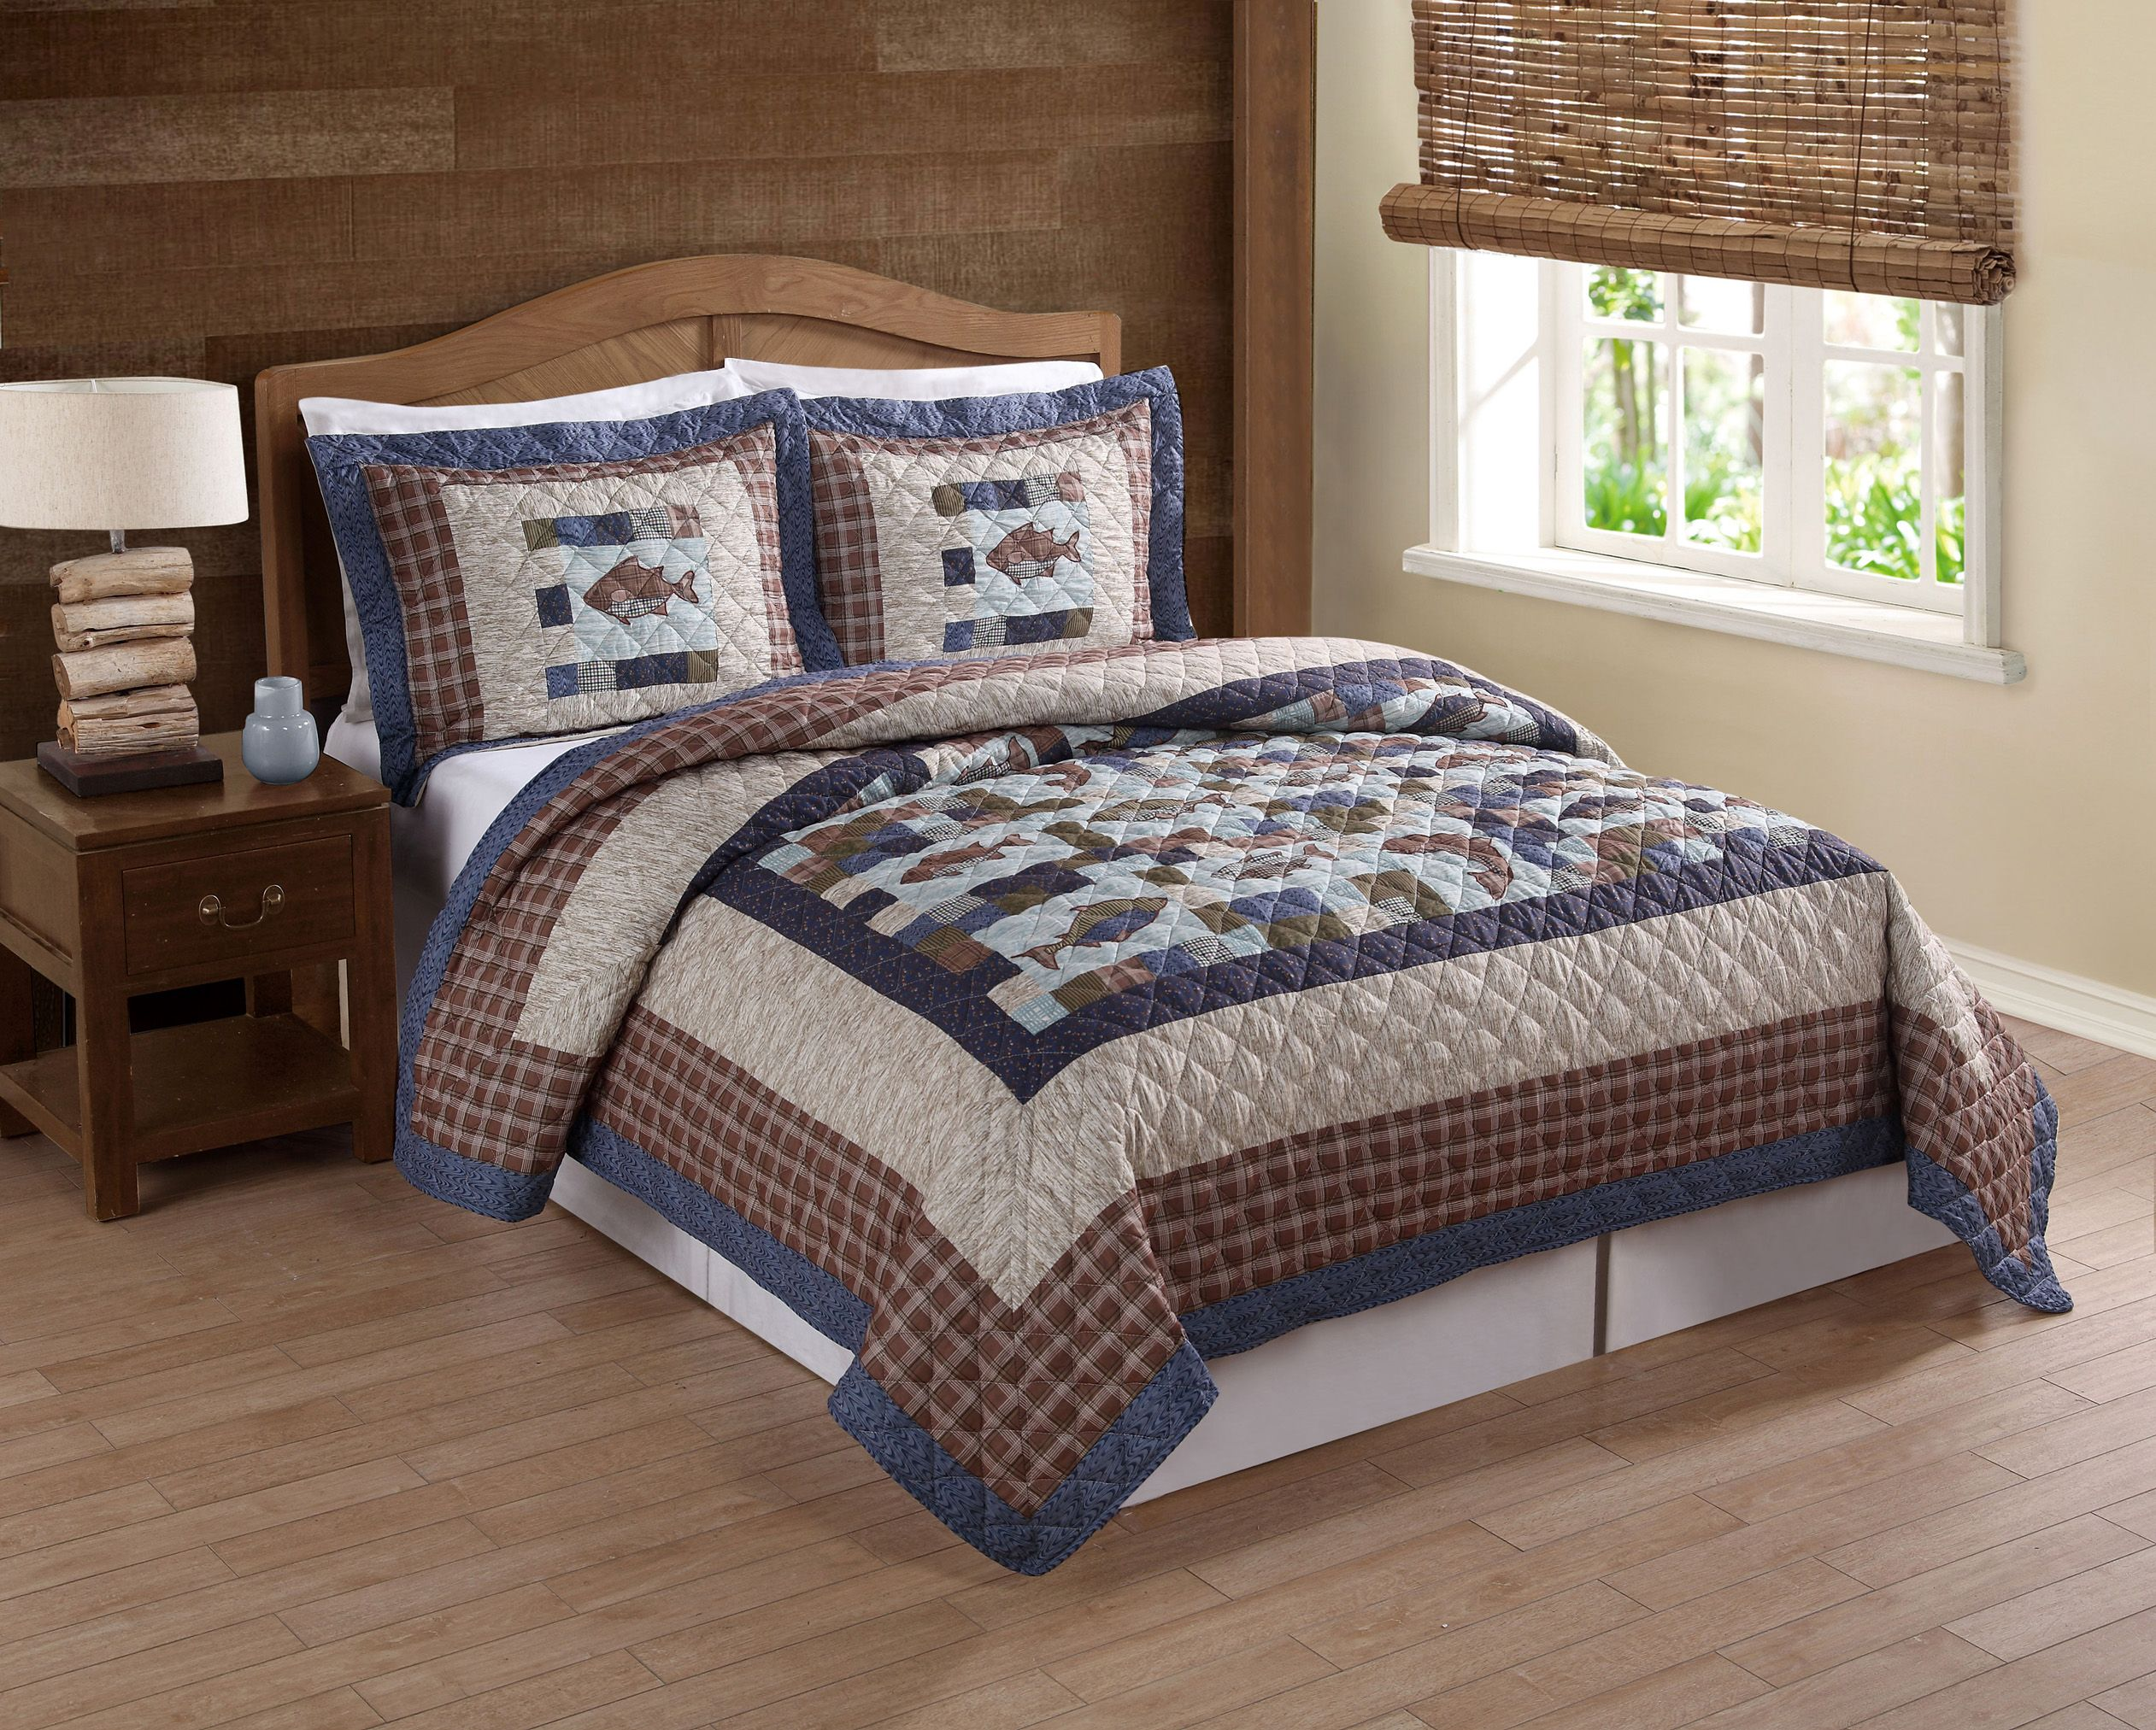 pinterest comforters best set creek themed every will familybedding quilt swimming cedar this rustic on bedding up comforter love a bedroom stream angler camo fishing images avid